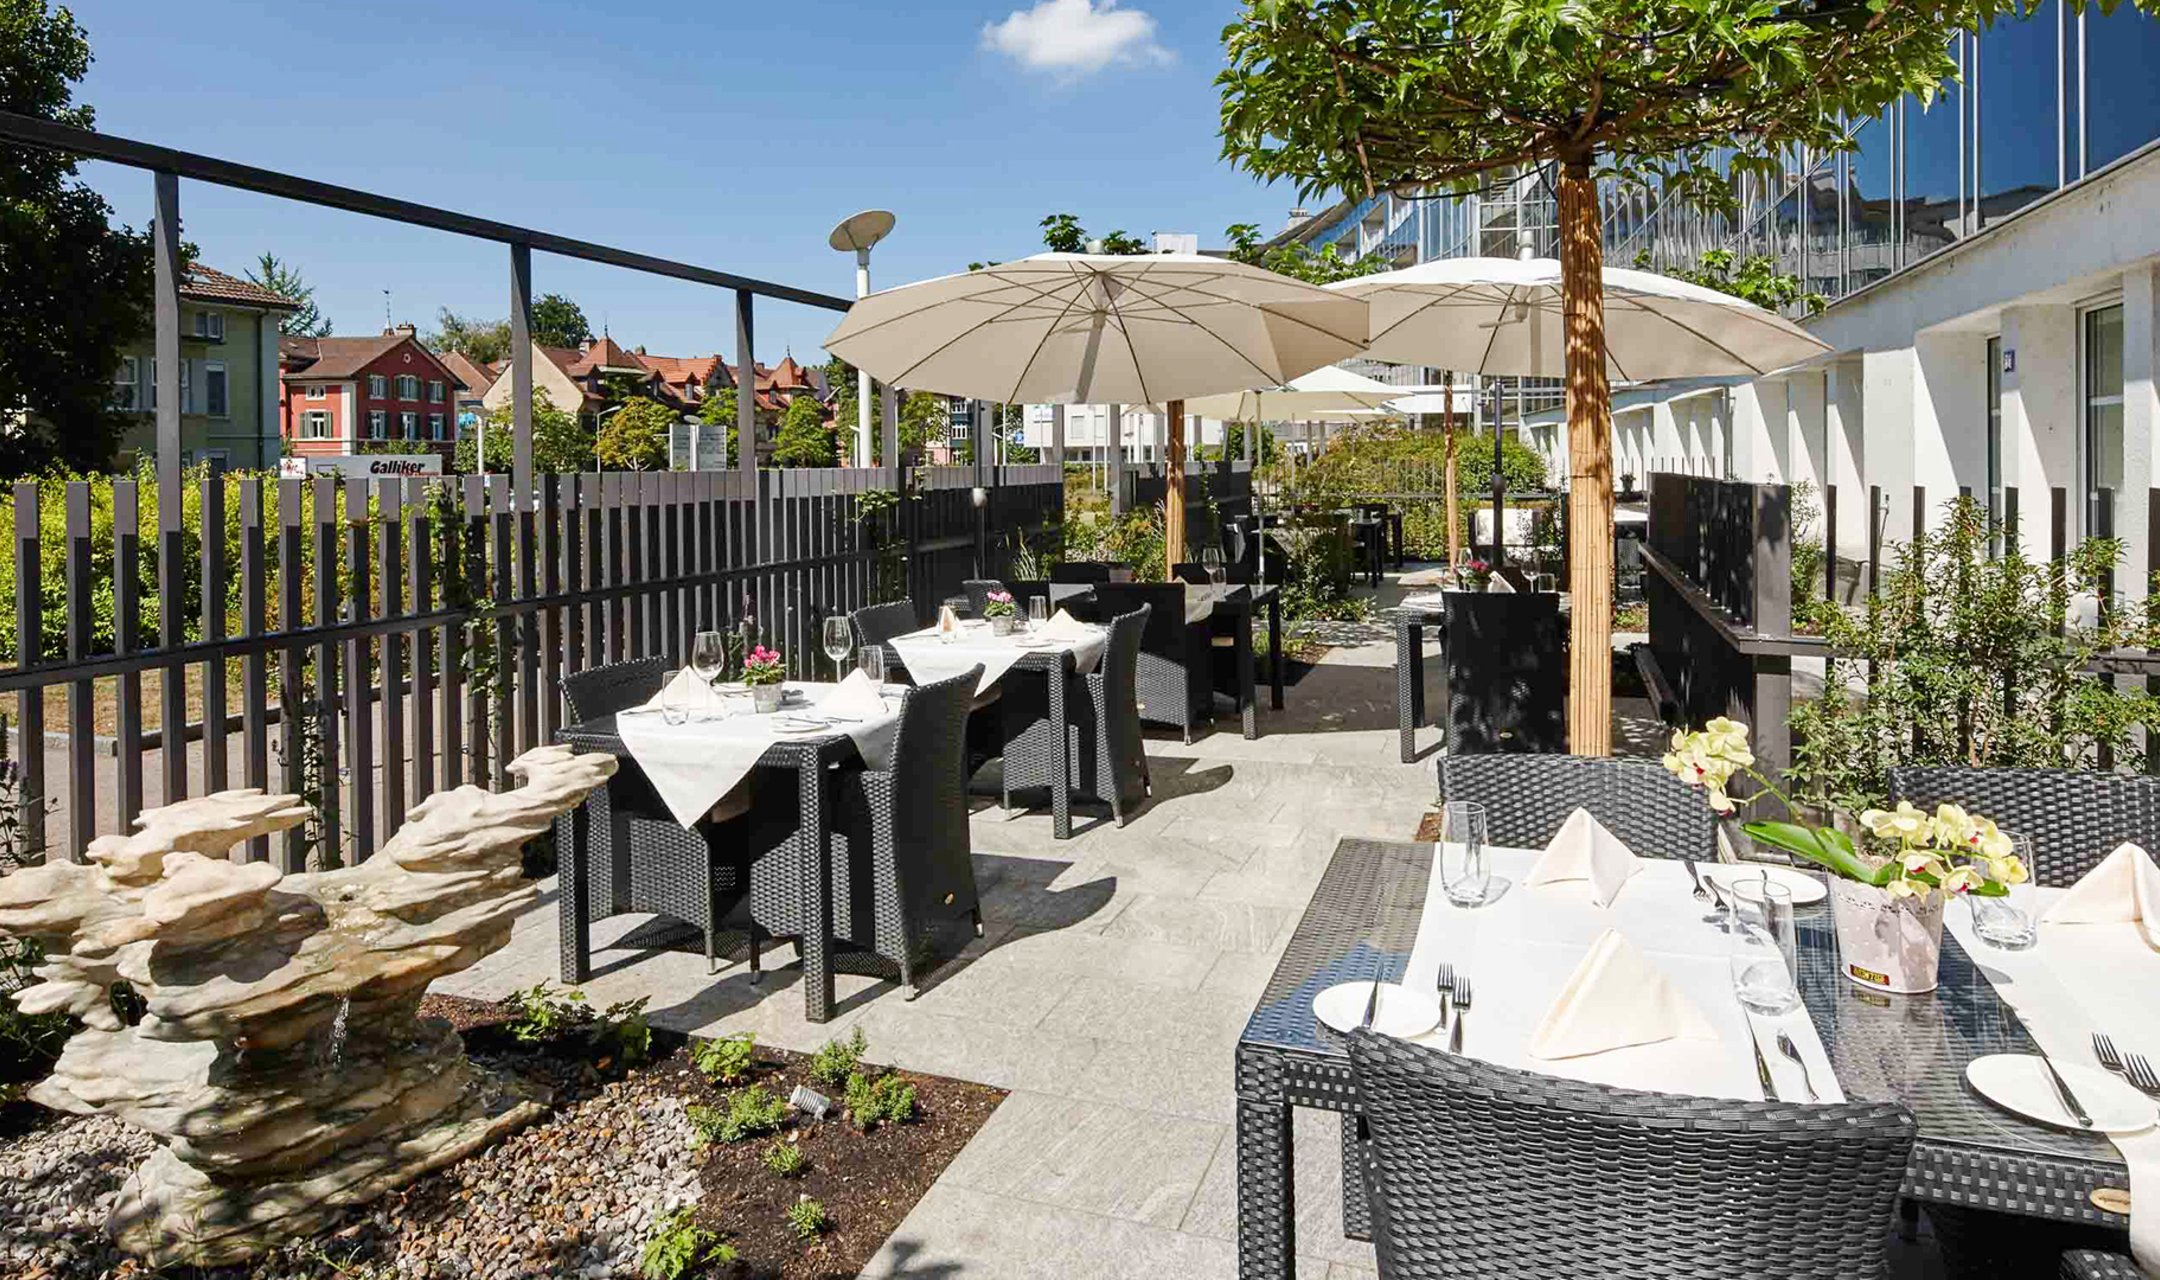 Terrace open again from April 19, 2021